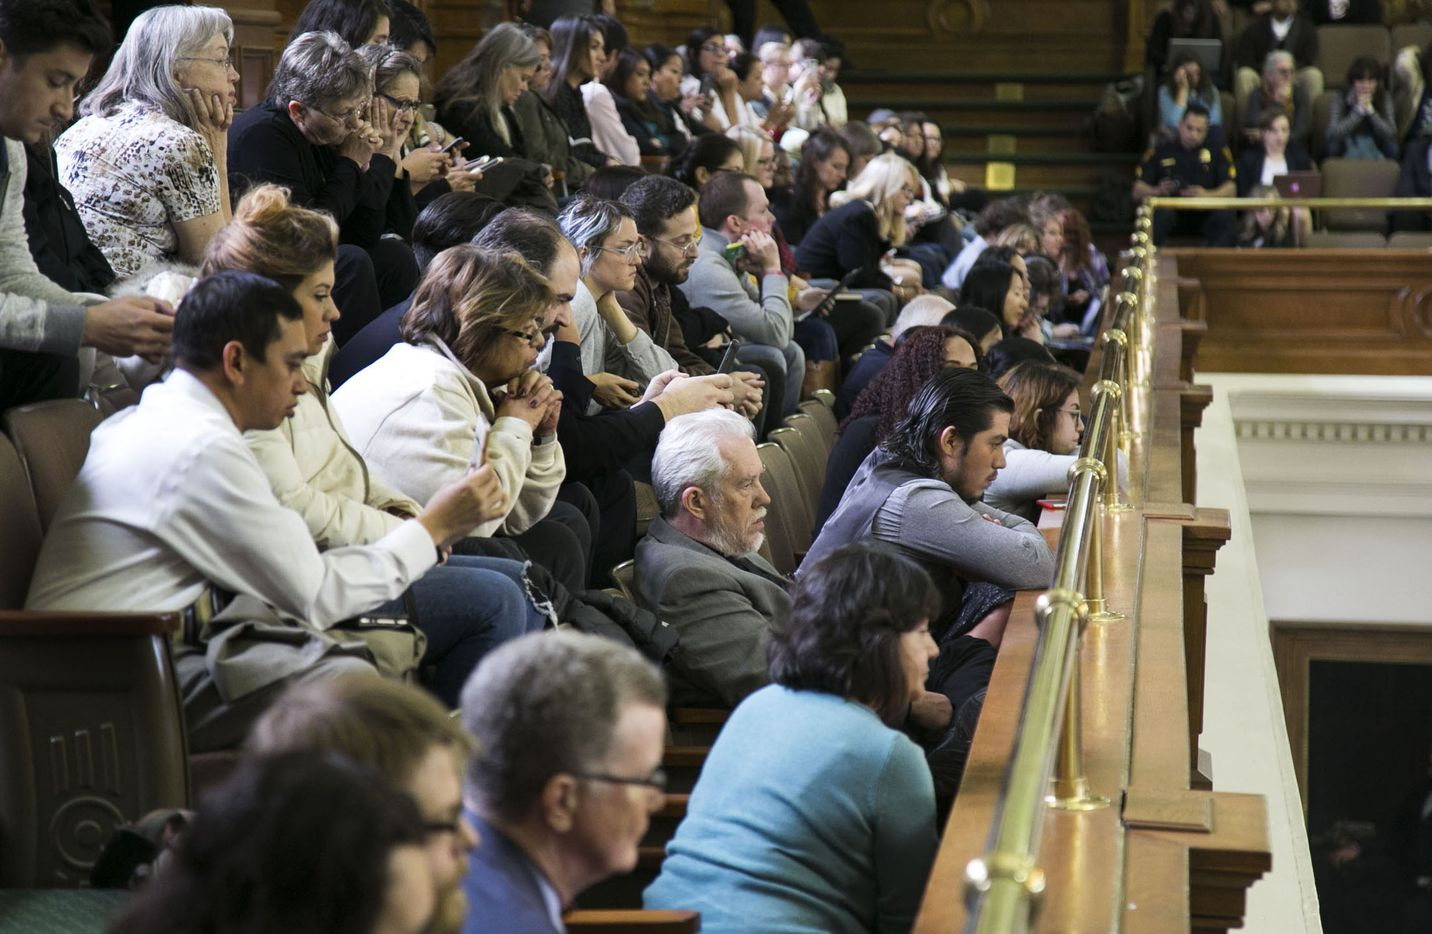 People fill the gallery at the Texas Capitol Thursday, February, 2, 2017 for a hearing in the Texas Senate on a bill to ban so-called sanctuary cities, the term for local governments that decline in some way to cooperate with federal immigration enforcement efforts.